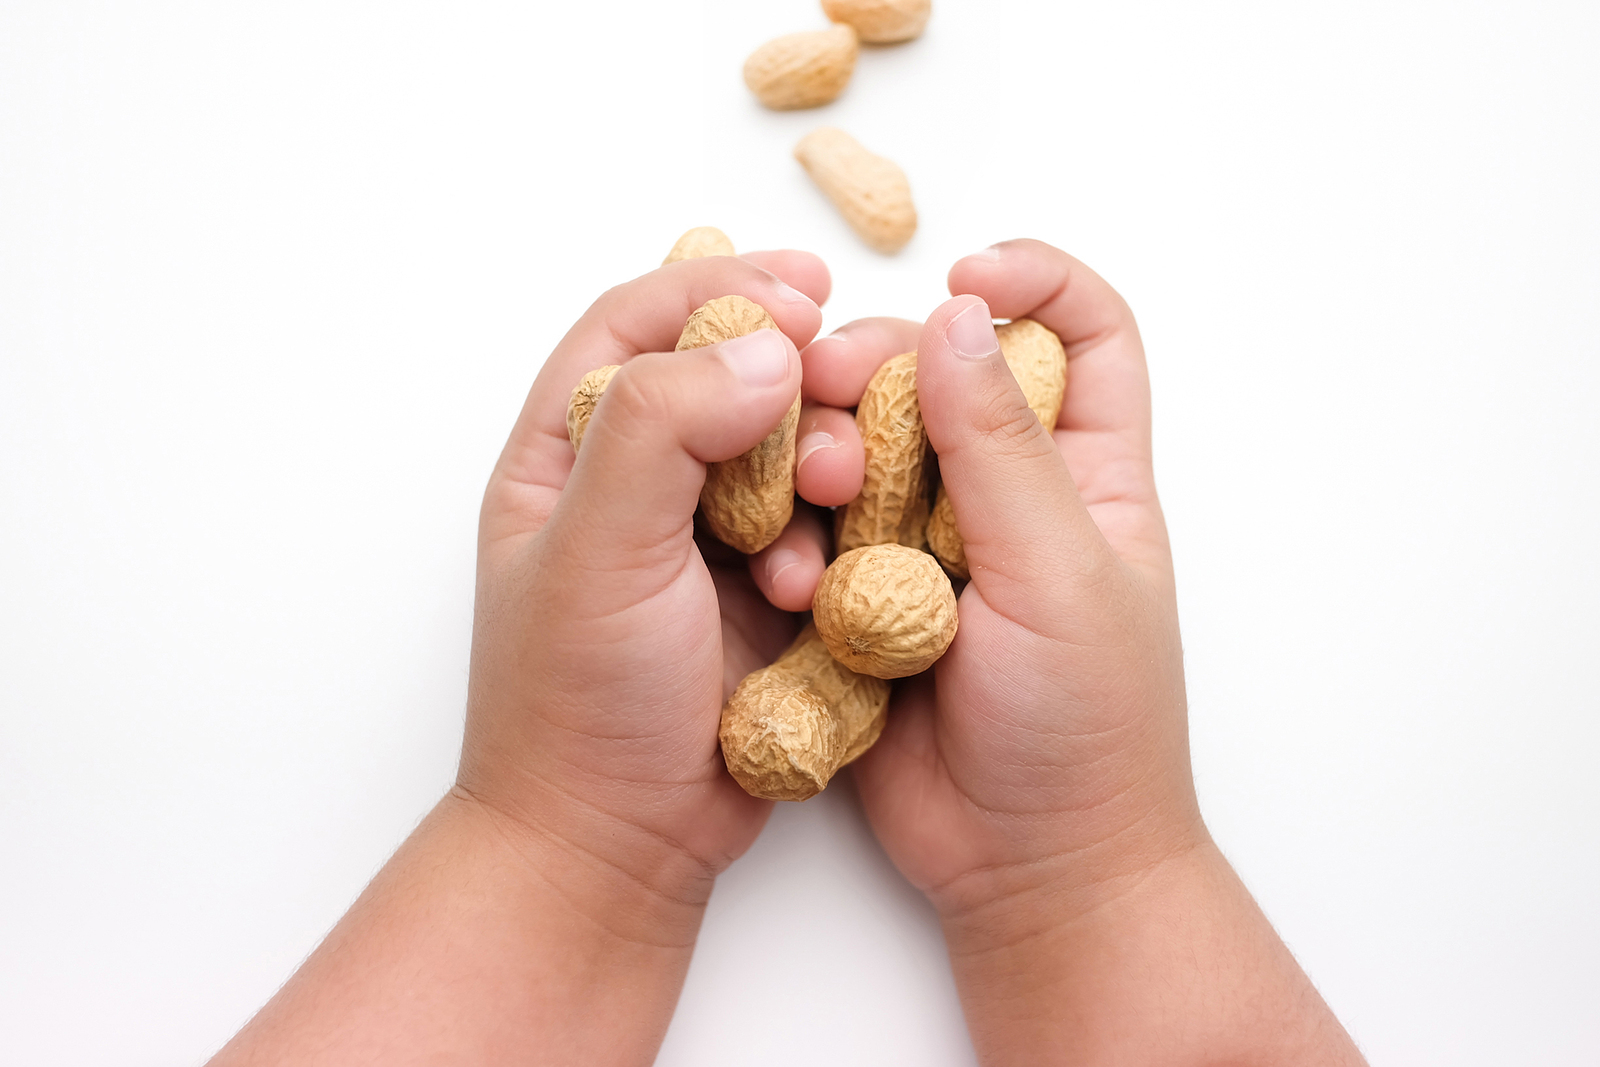 Study: Food Allergies May Be Linked To Childhood Anxiety